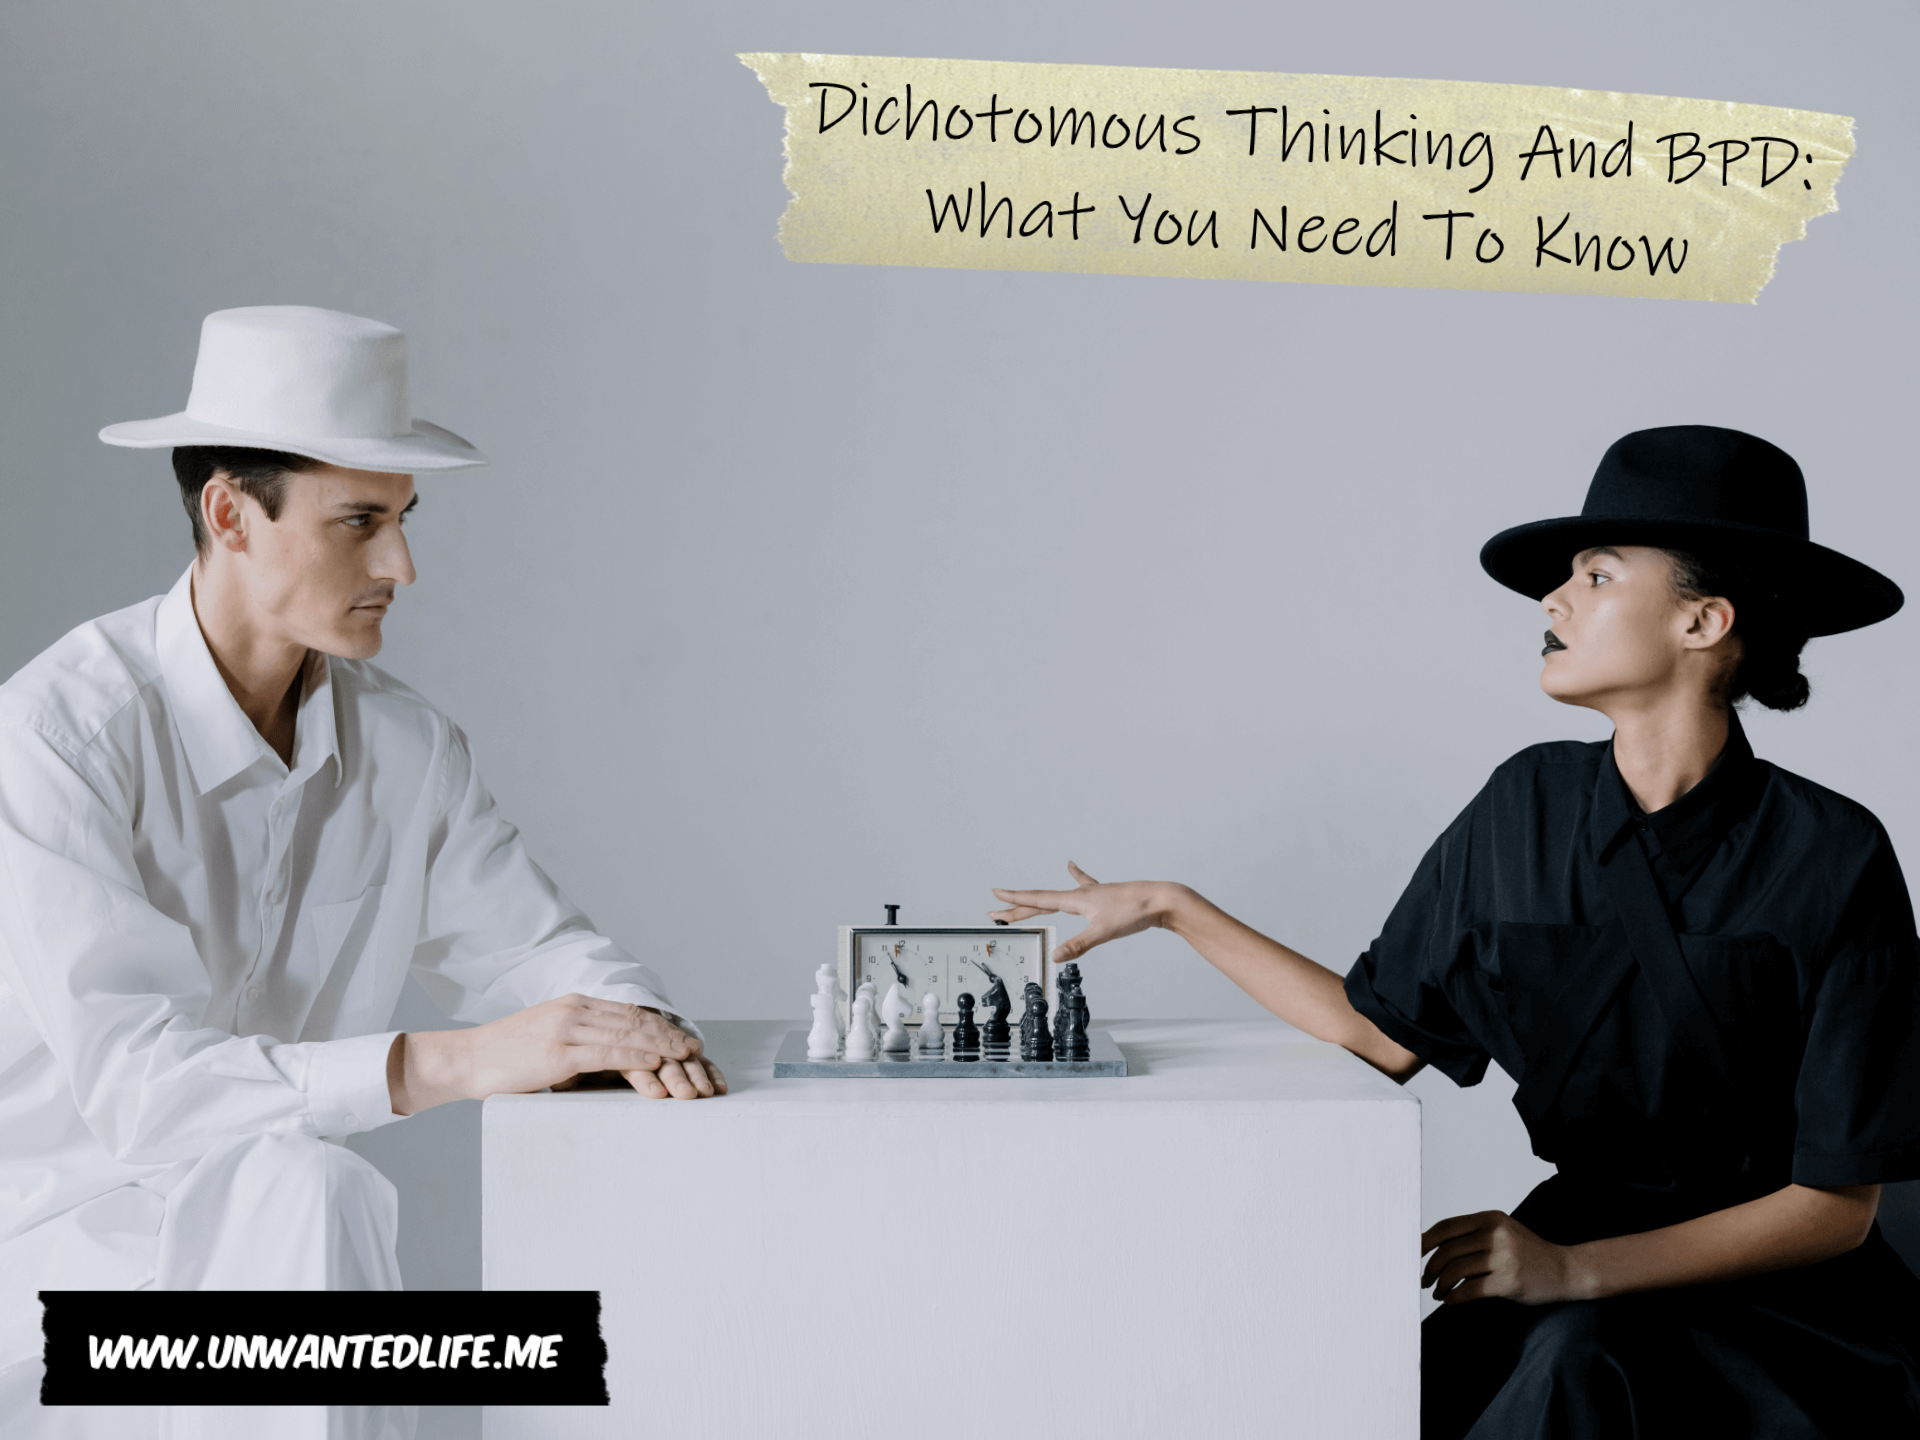 A photo of a woman in all black clothes playing chess with a man in all white clothes to represent the topic of the article - Dichotomous Thinking And BPD What You Need To Know